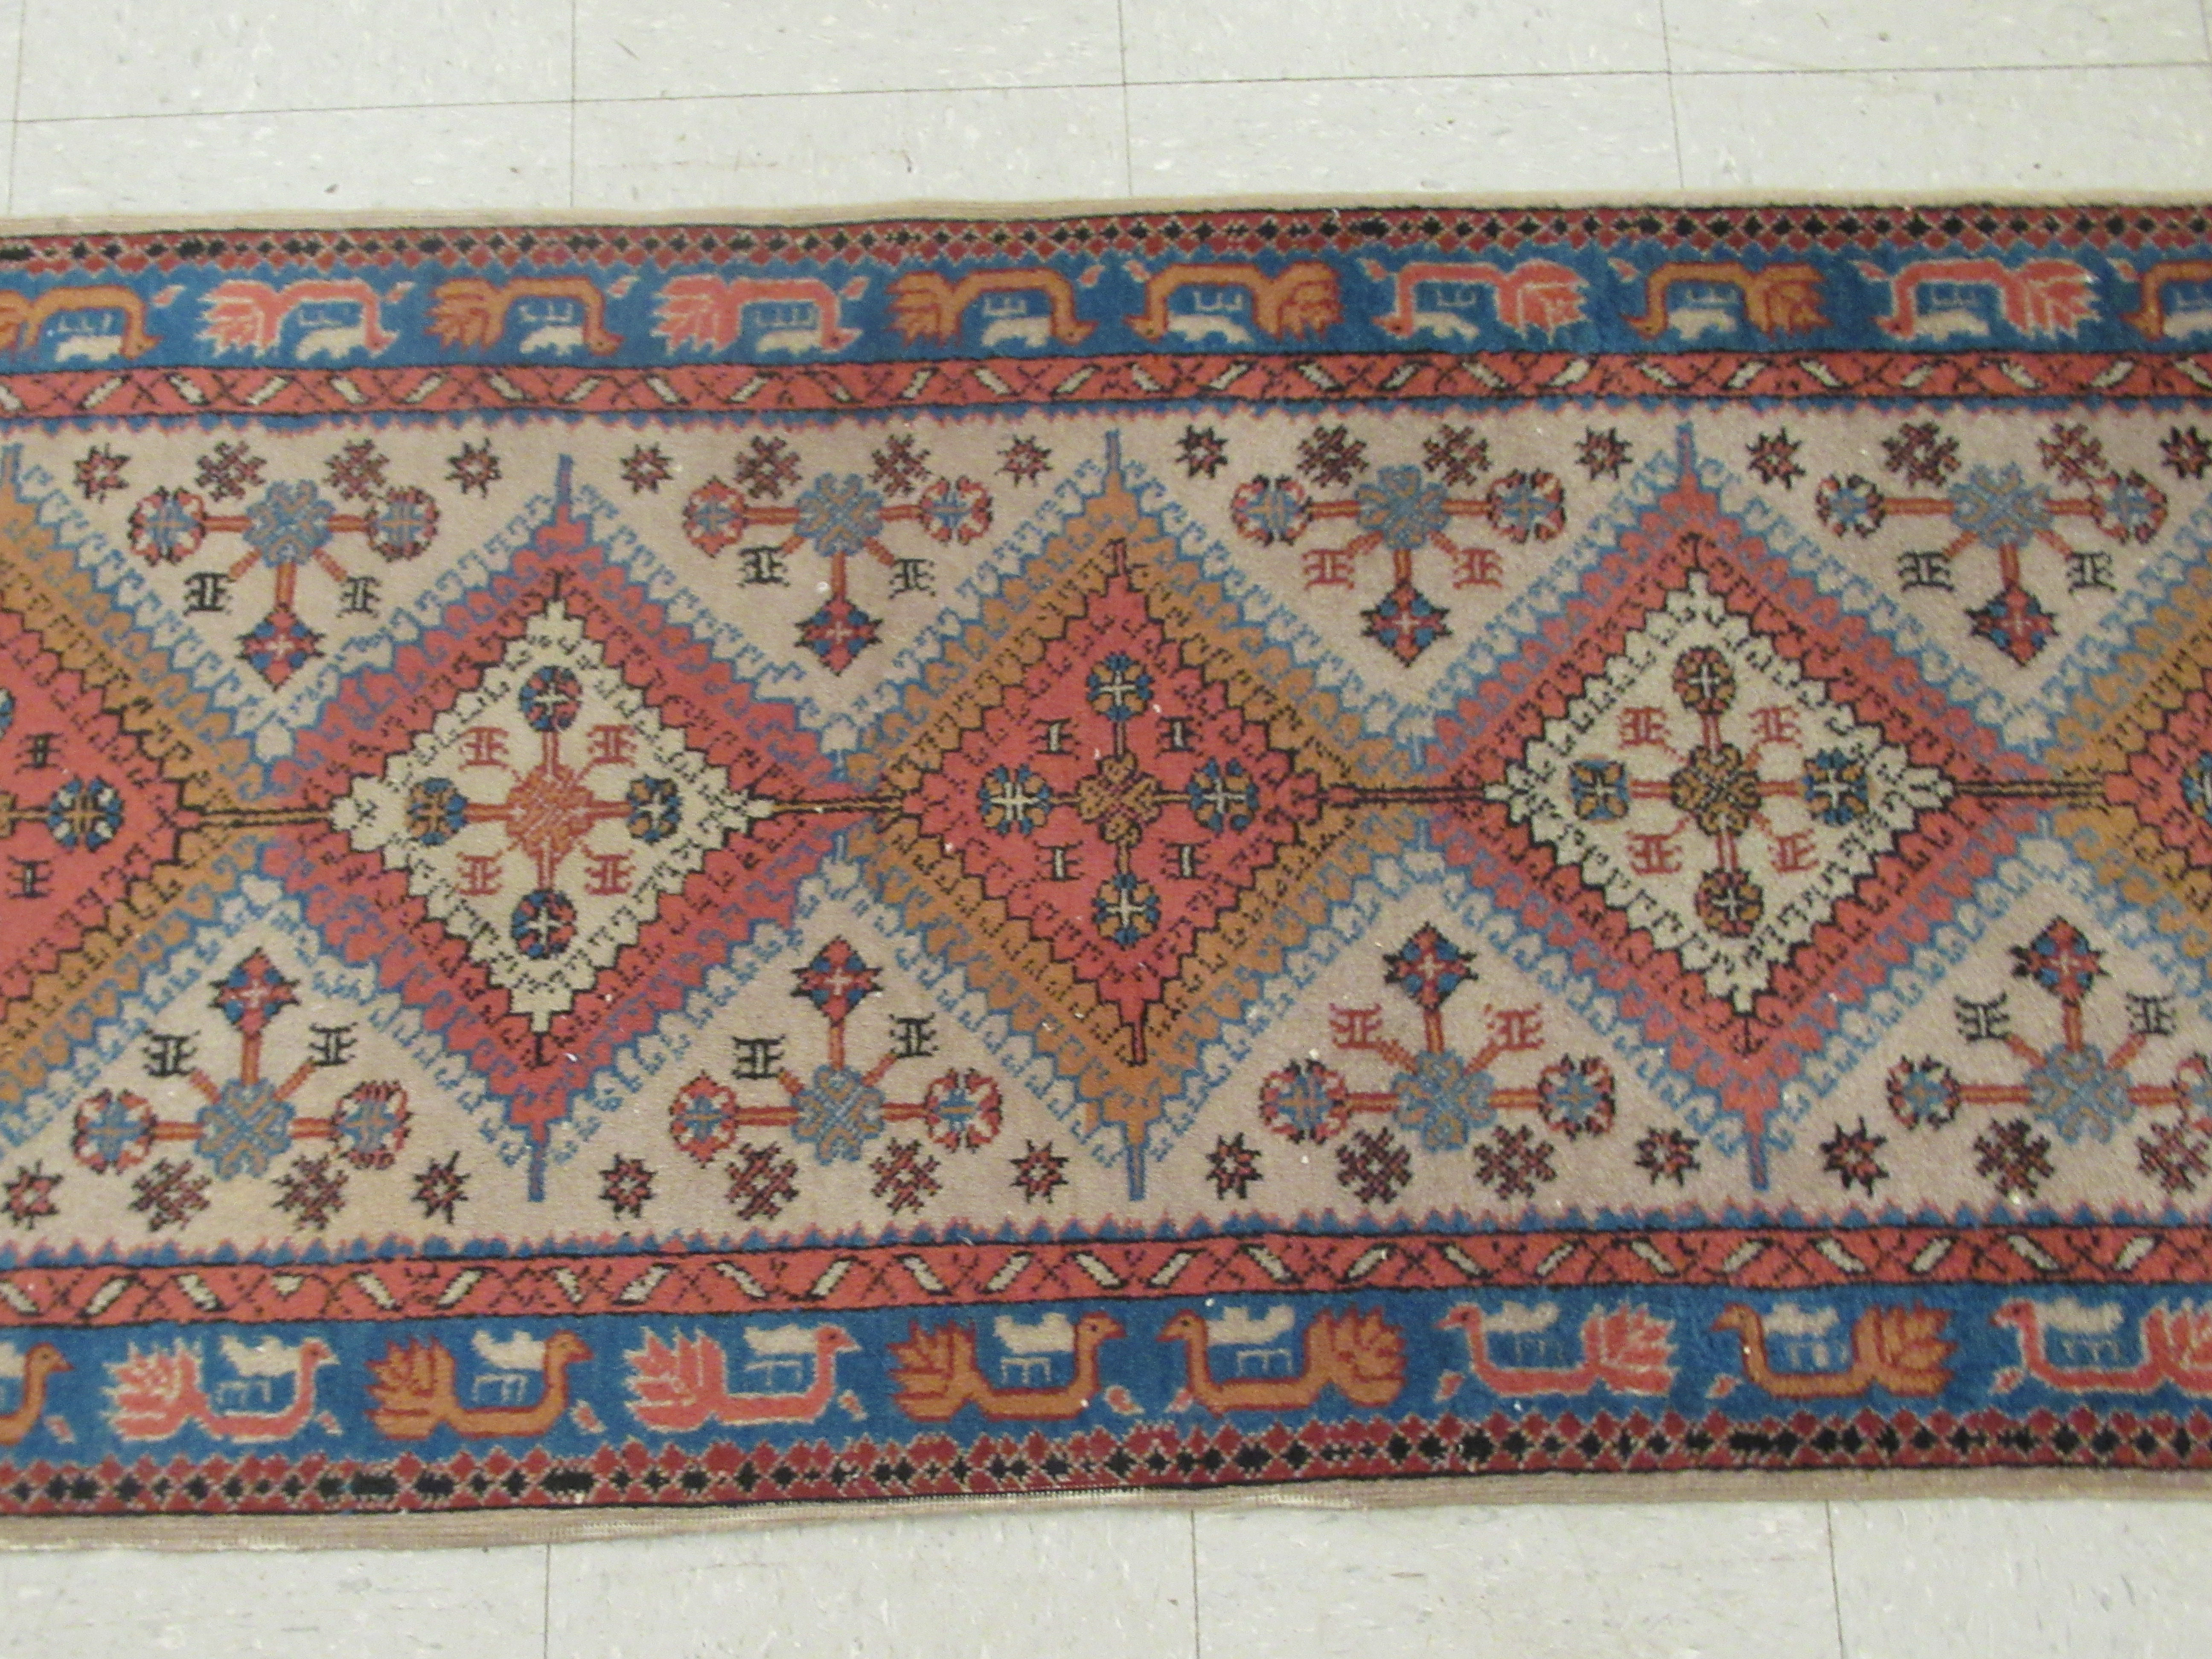 A Samarkand runner, decorated with repeating diamond formations, bordered by stylised designs, on - Image 2 of 5